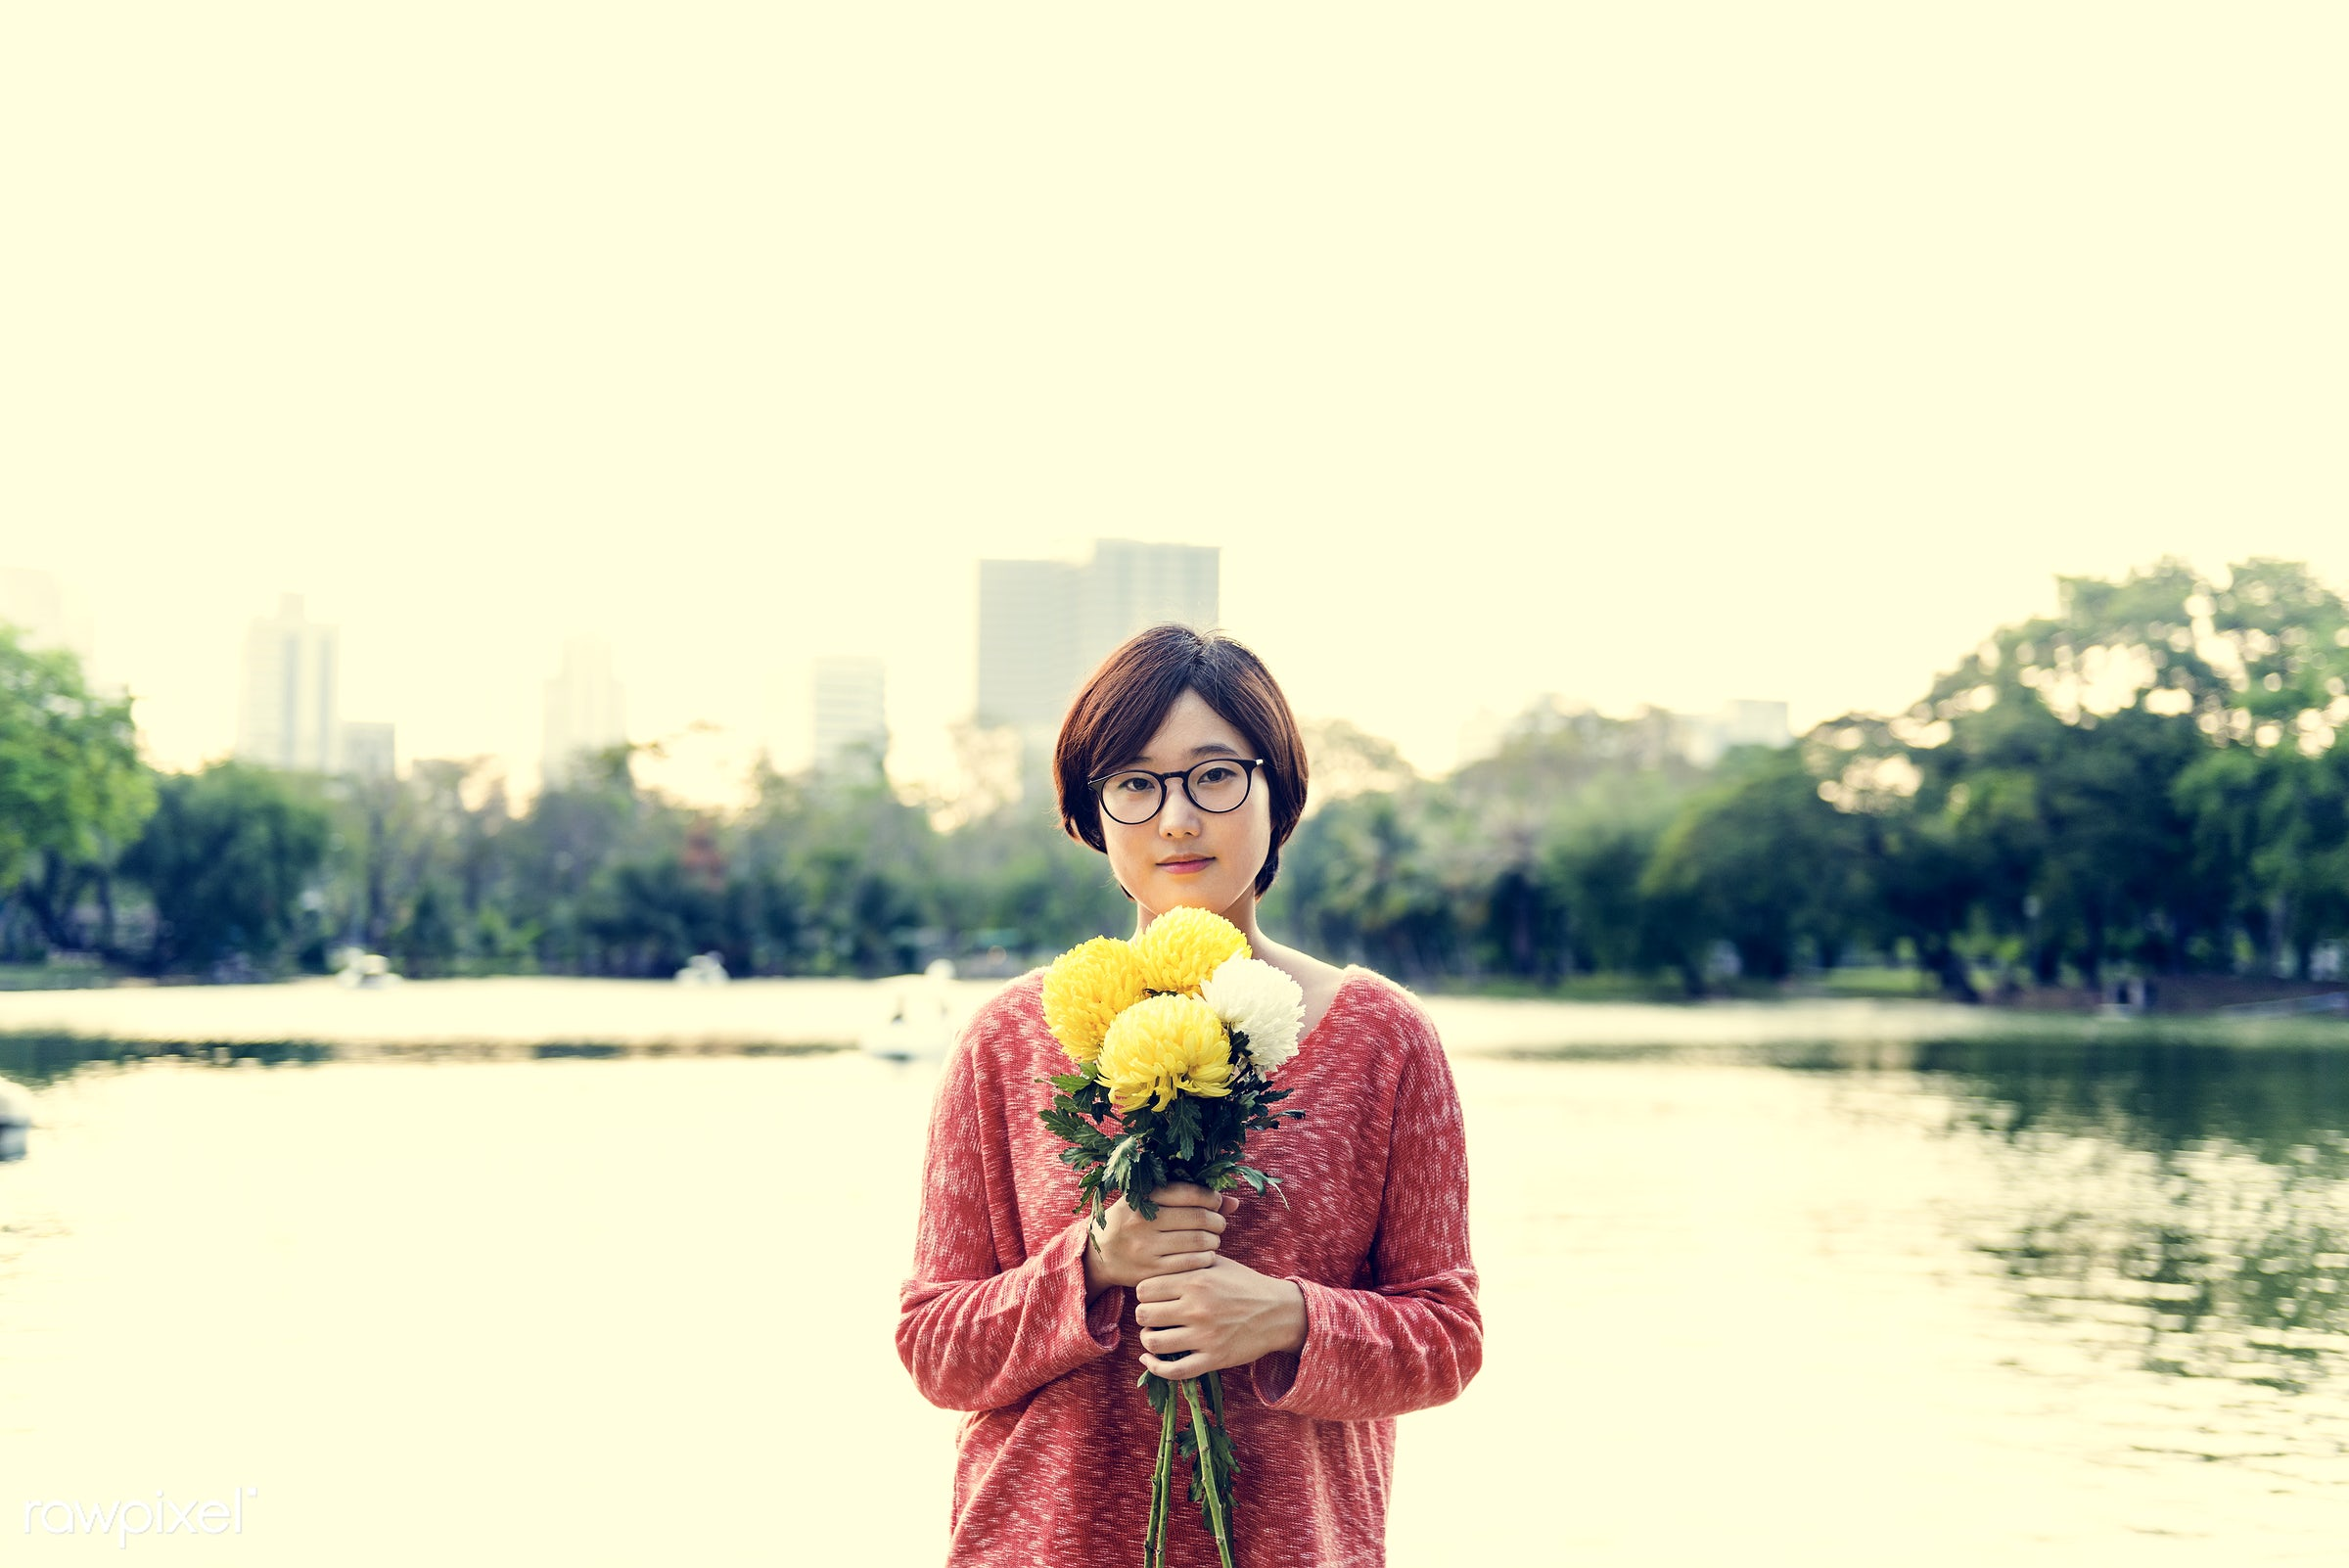 alone, asian, asian ethnicity, beautiful, blossom, calm, casual, cheerful, chilling, chrysanthemum, dating, enjoyment, flora...